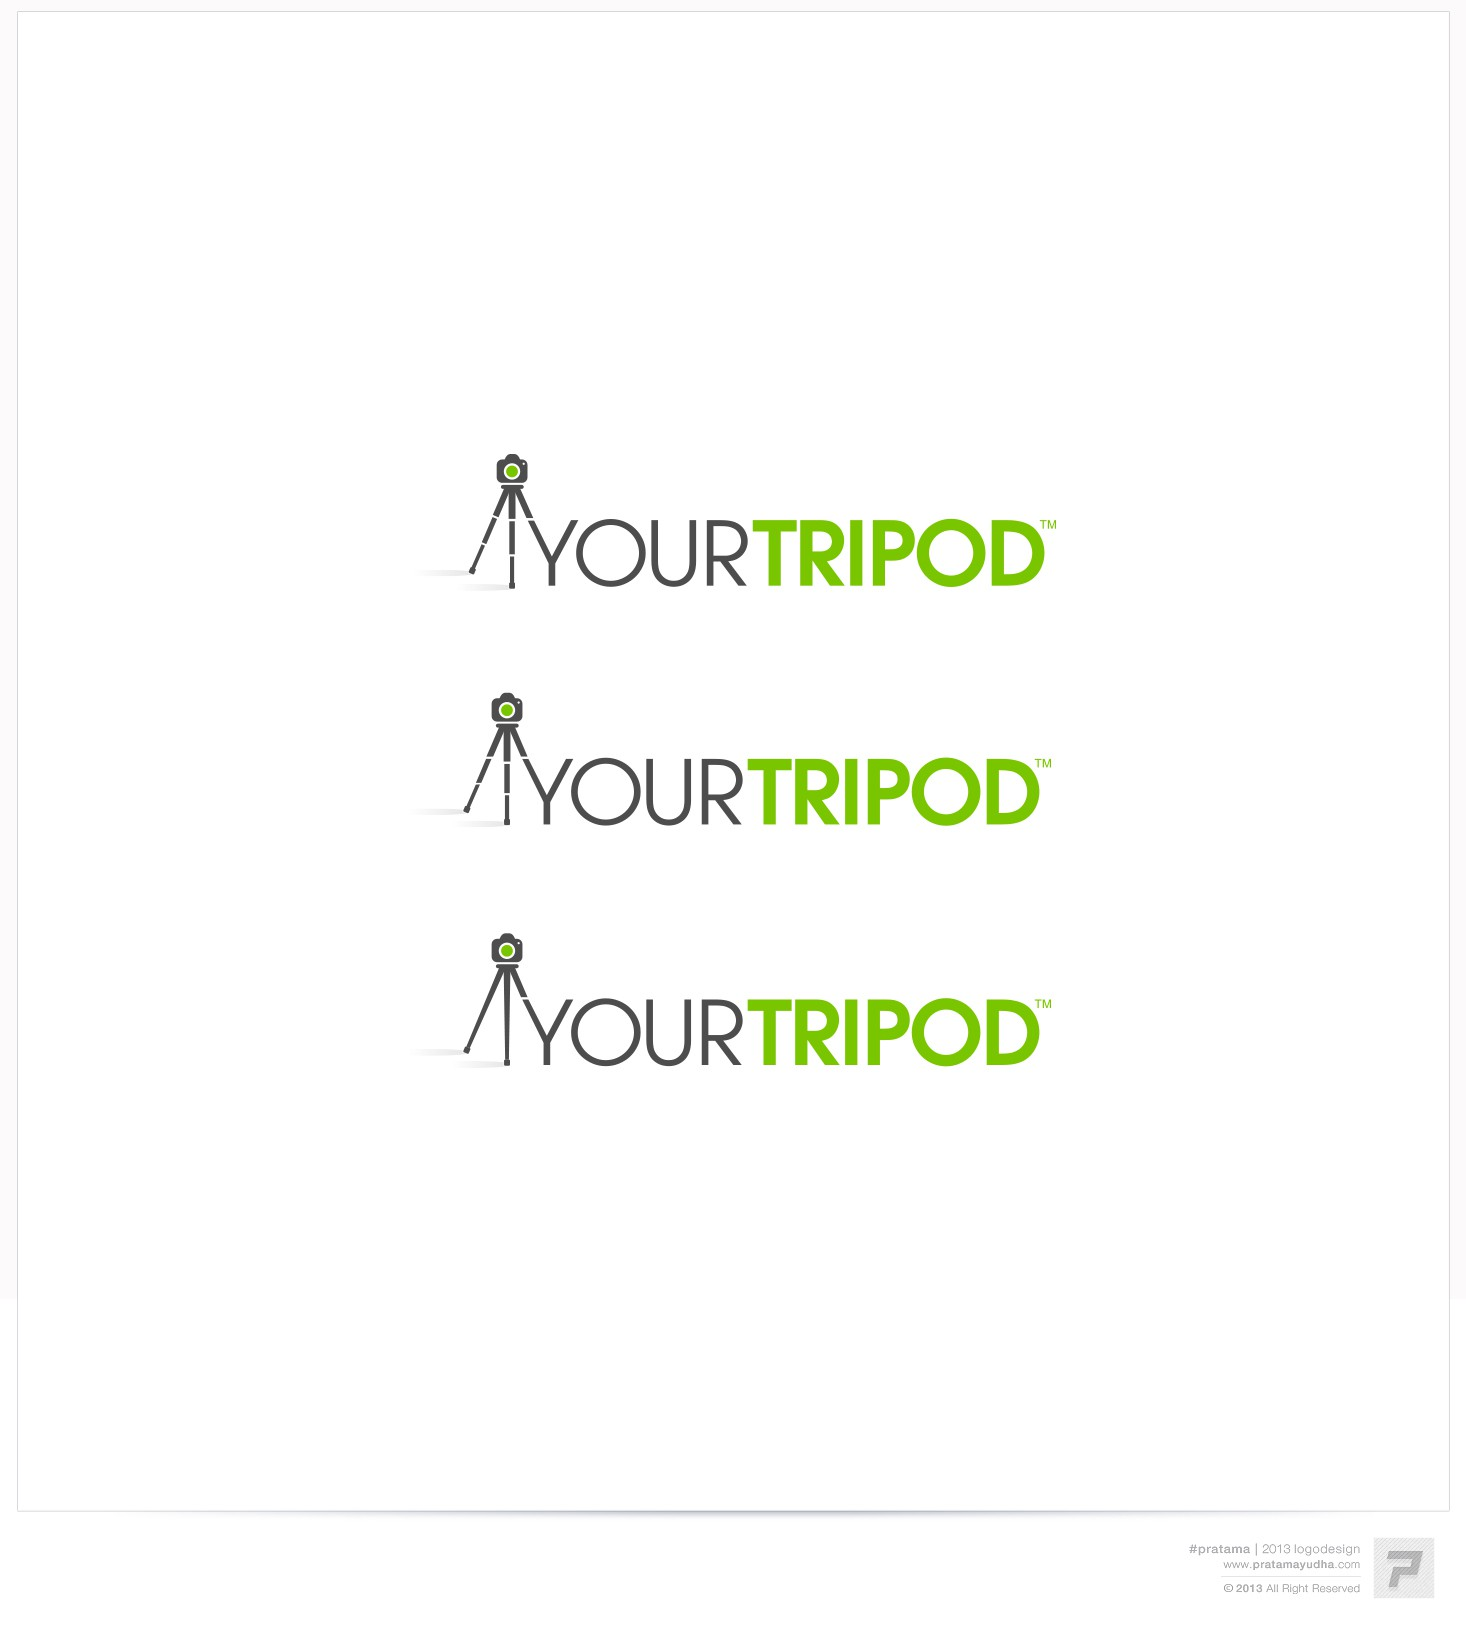 Tri your hand at designing a logo for 'Your Tripod' < See what we did there?